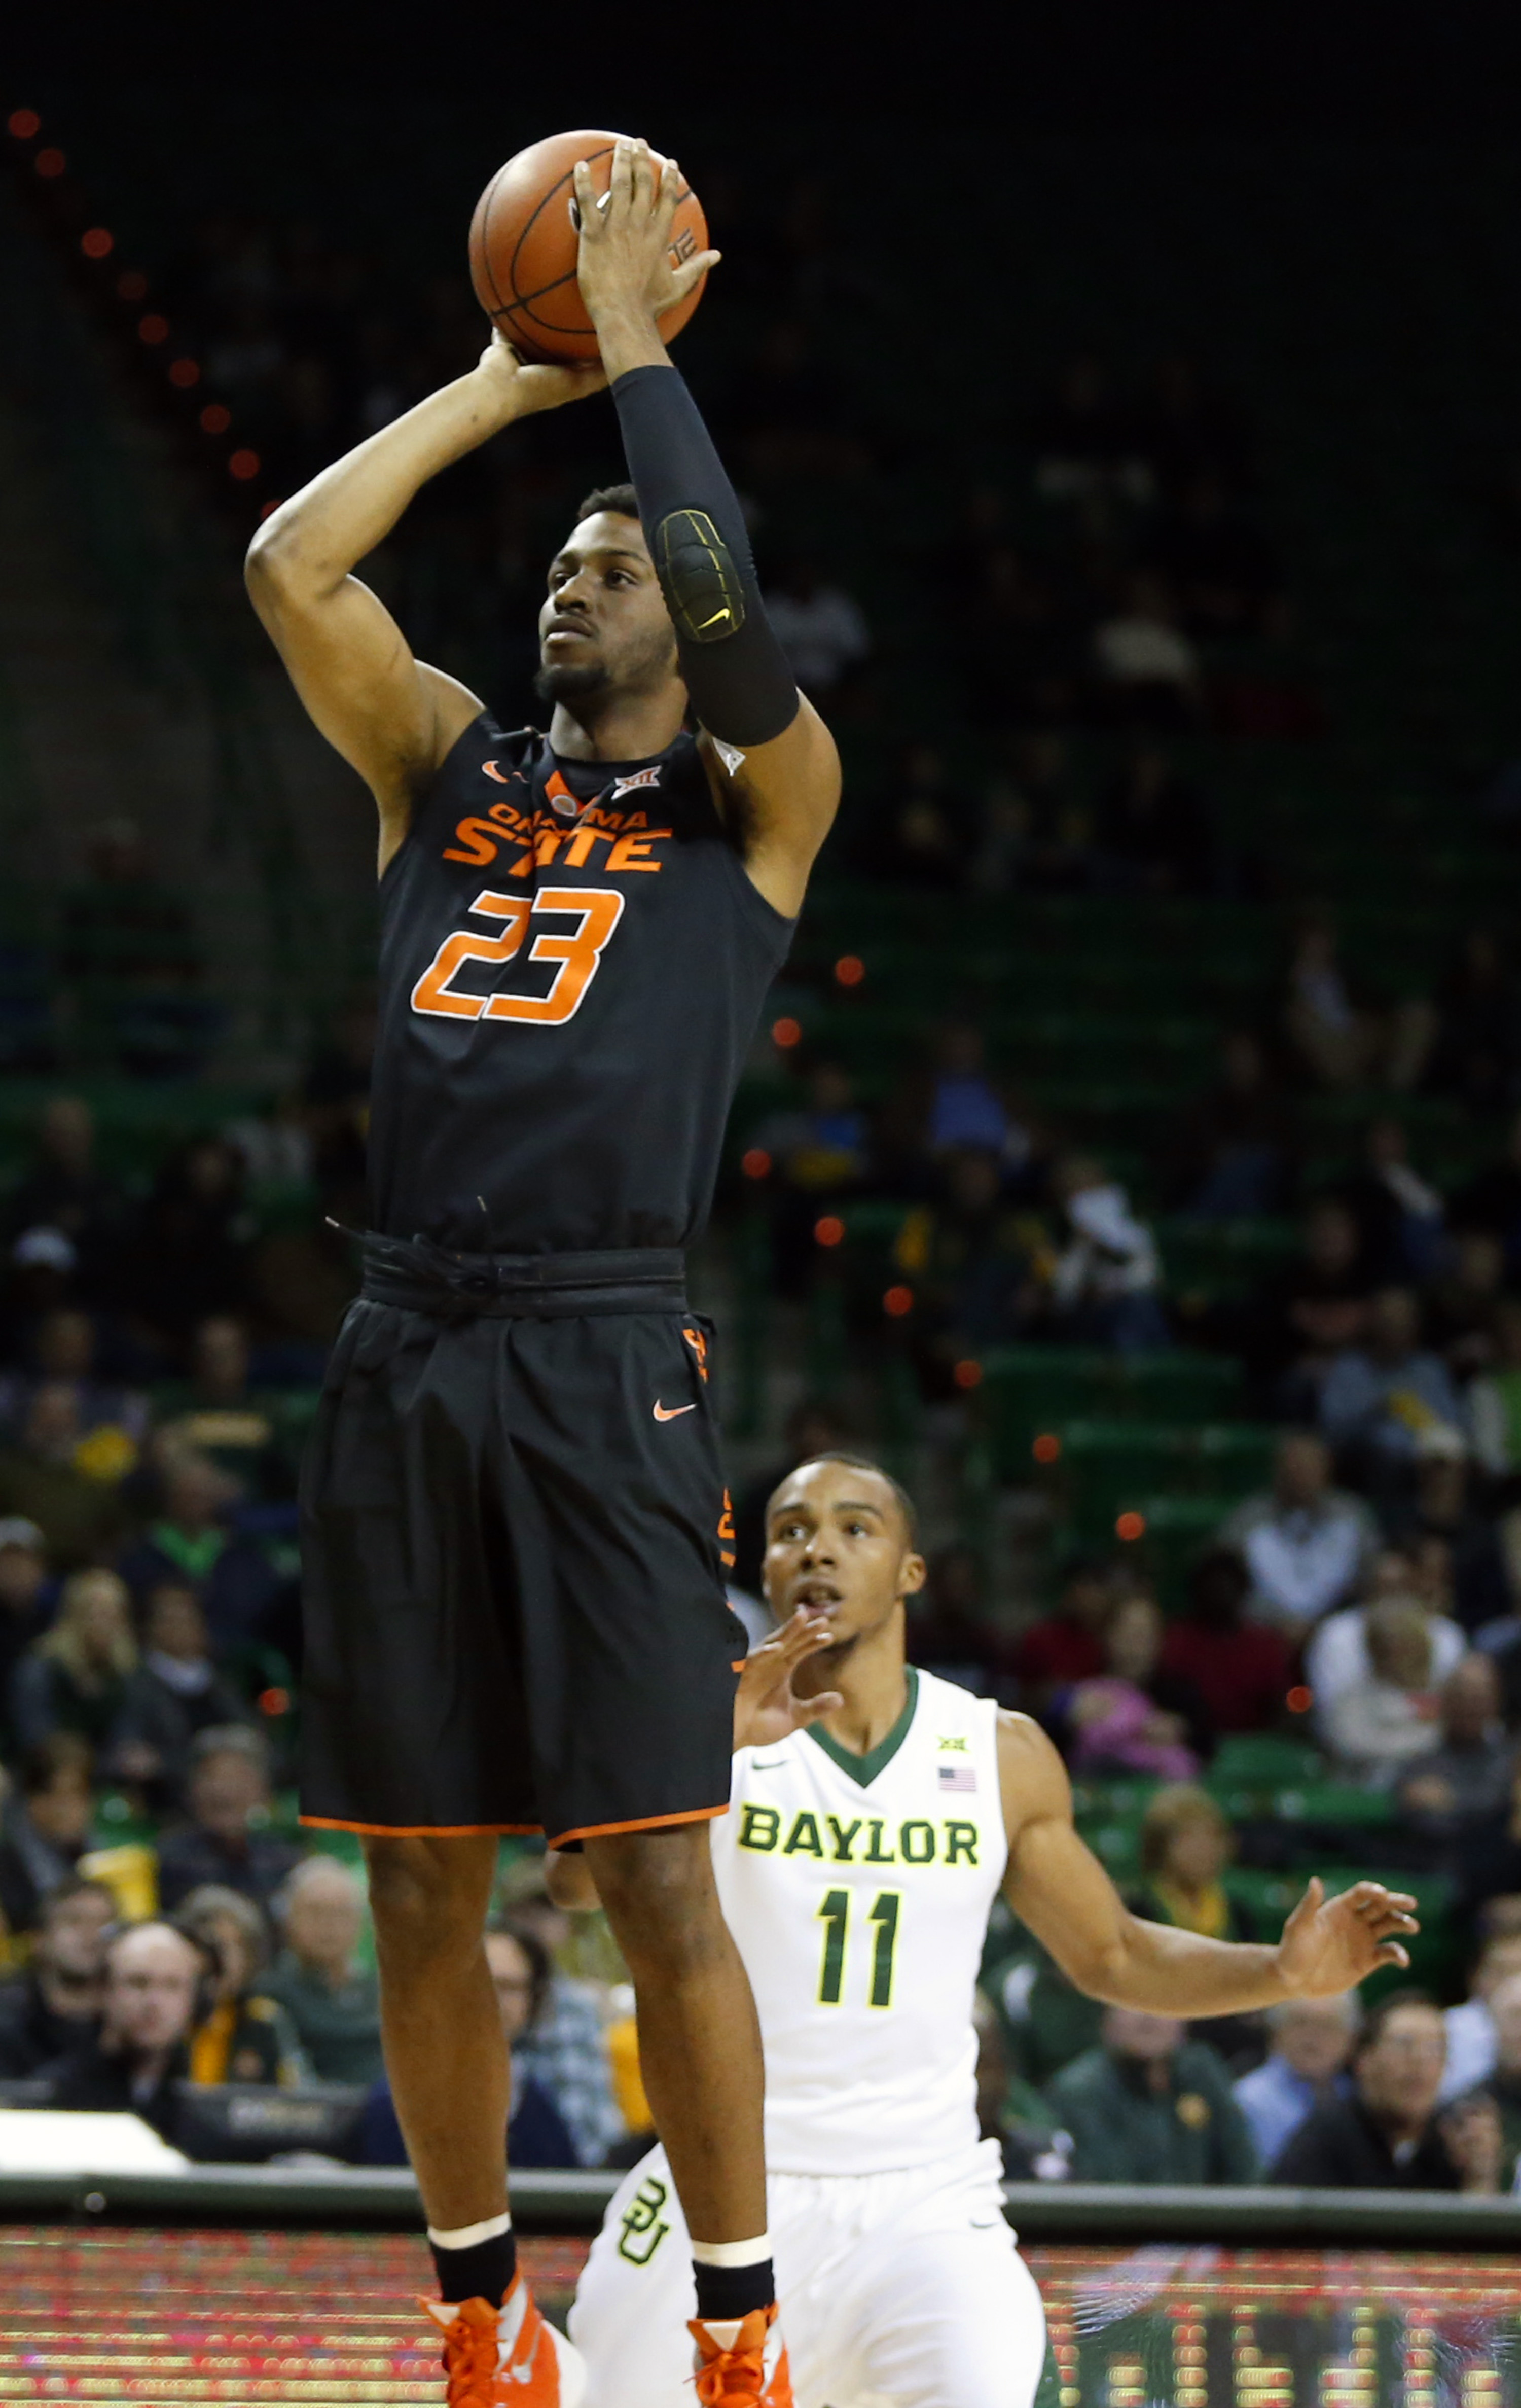 Oklahoma State Leyton Hammonds (23) scores over Baylor guard Lester Medford (11) in the first half of an NCAA college basketball game, Tuesday, Jan. 5, 2016, in Waco, Texas. (Rod Aydelotte/Waco Tribune Herald, via AP)